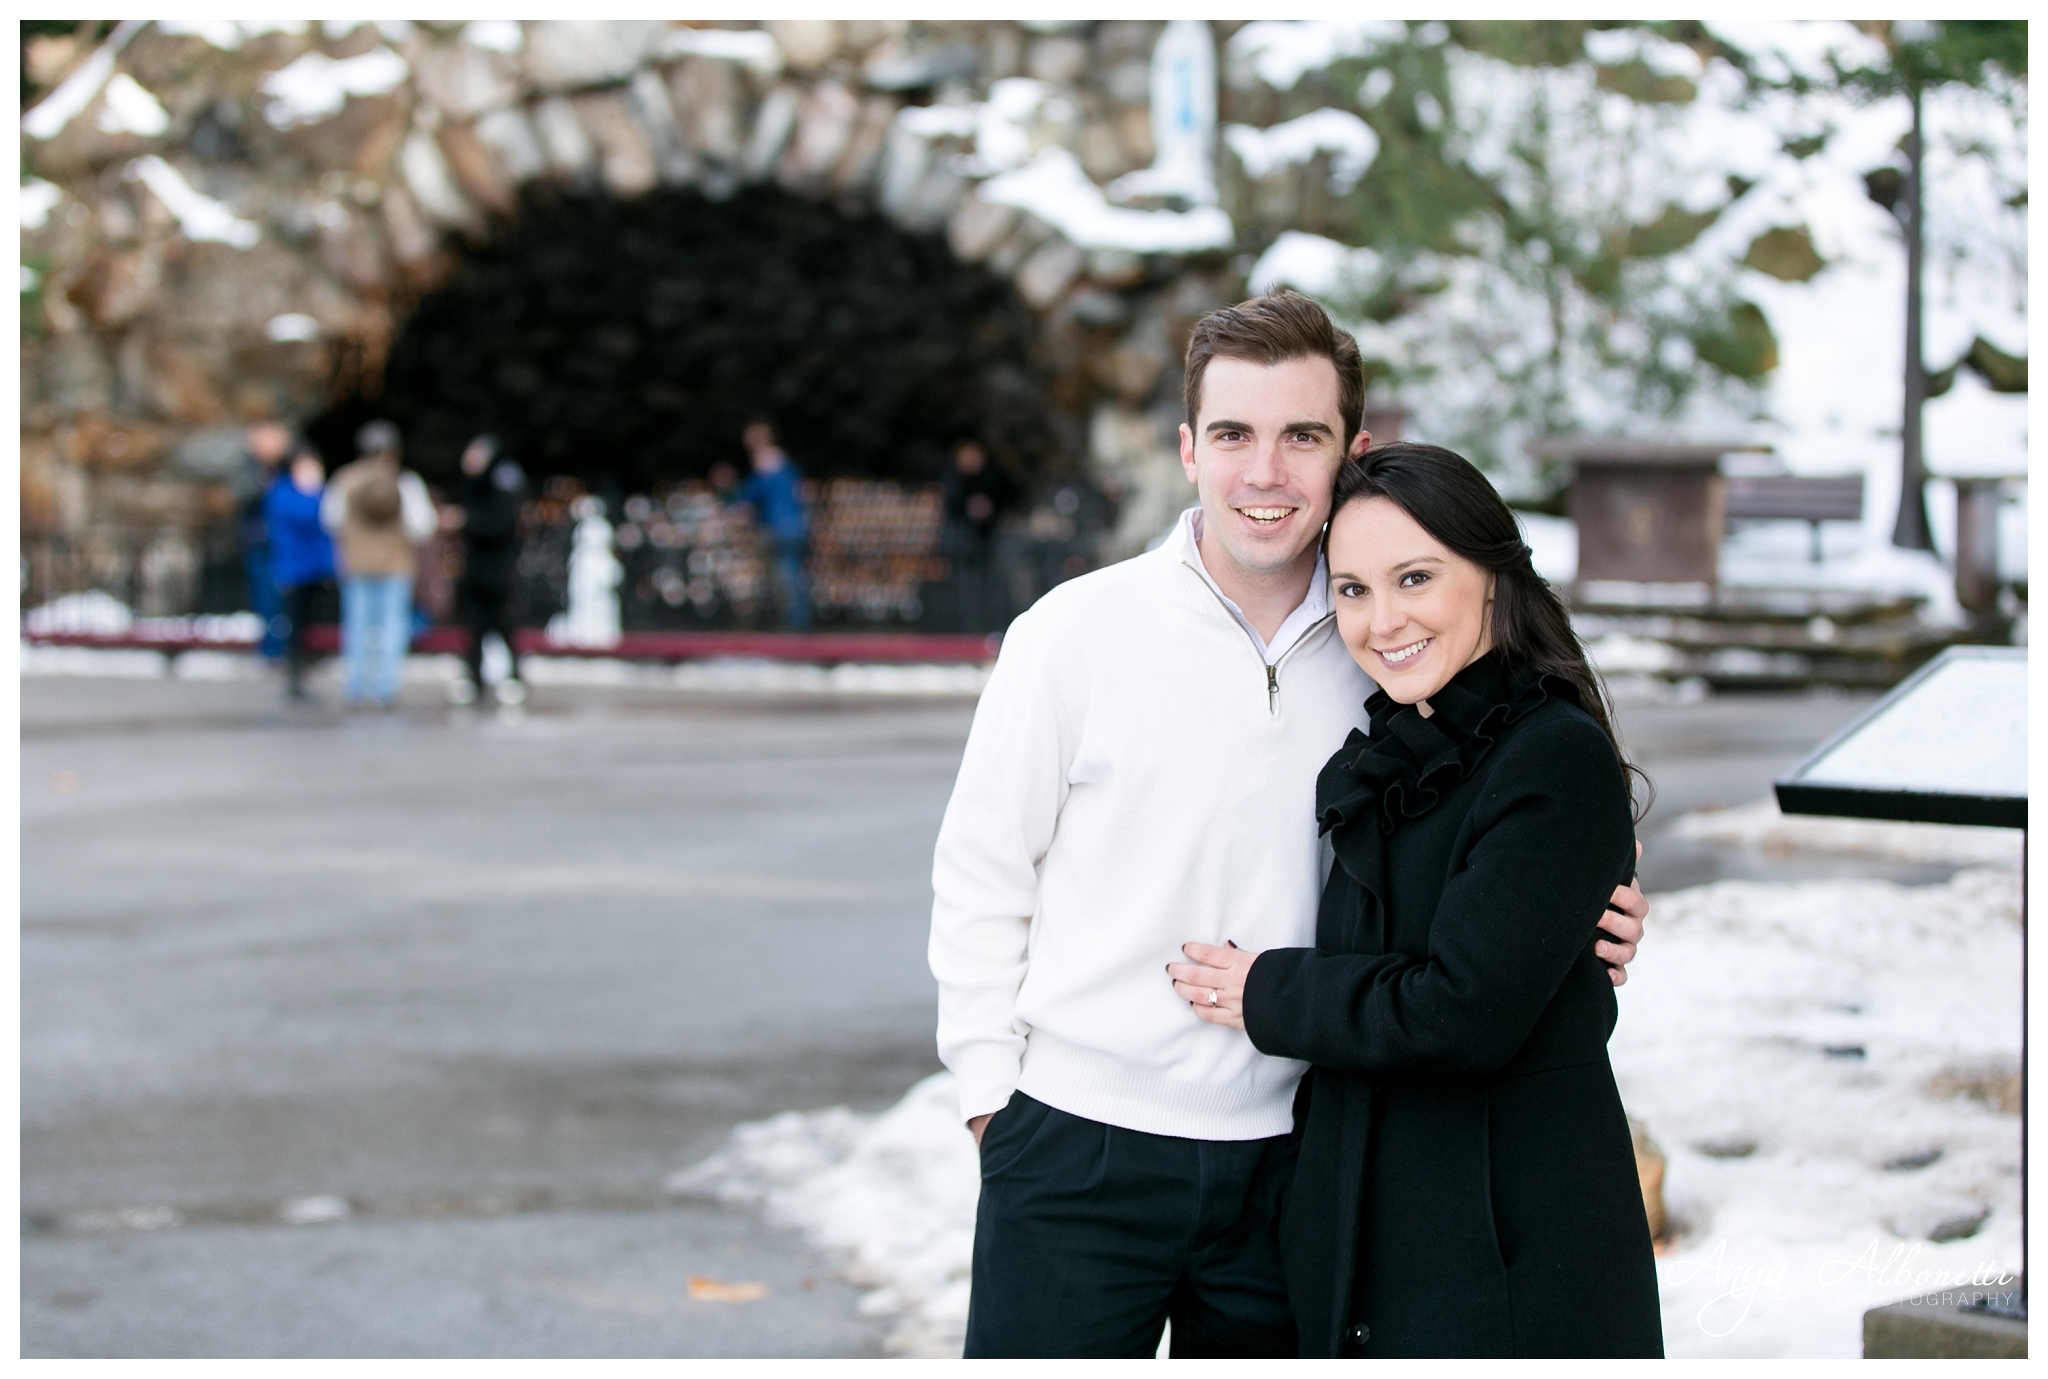 Notre Dame Winter Engagements